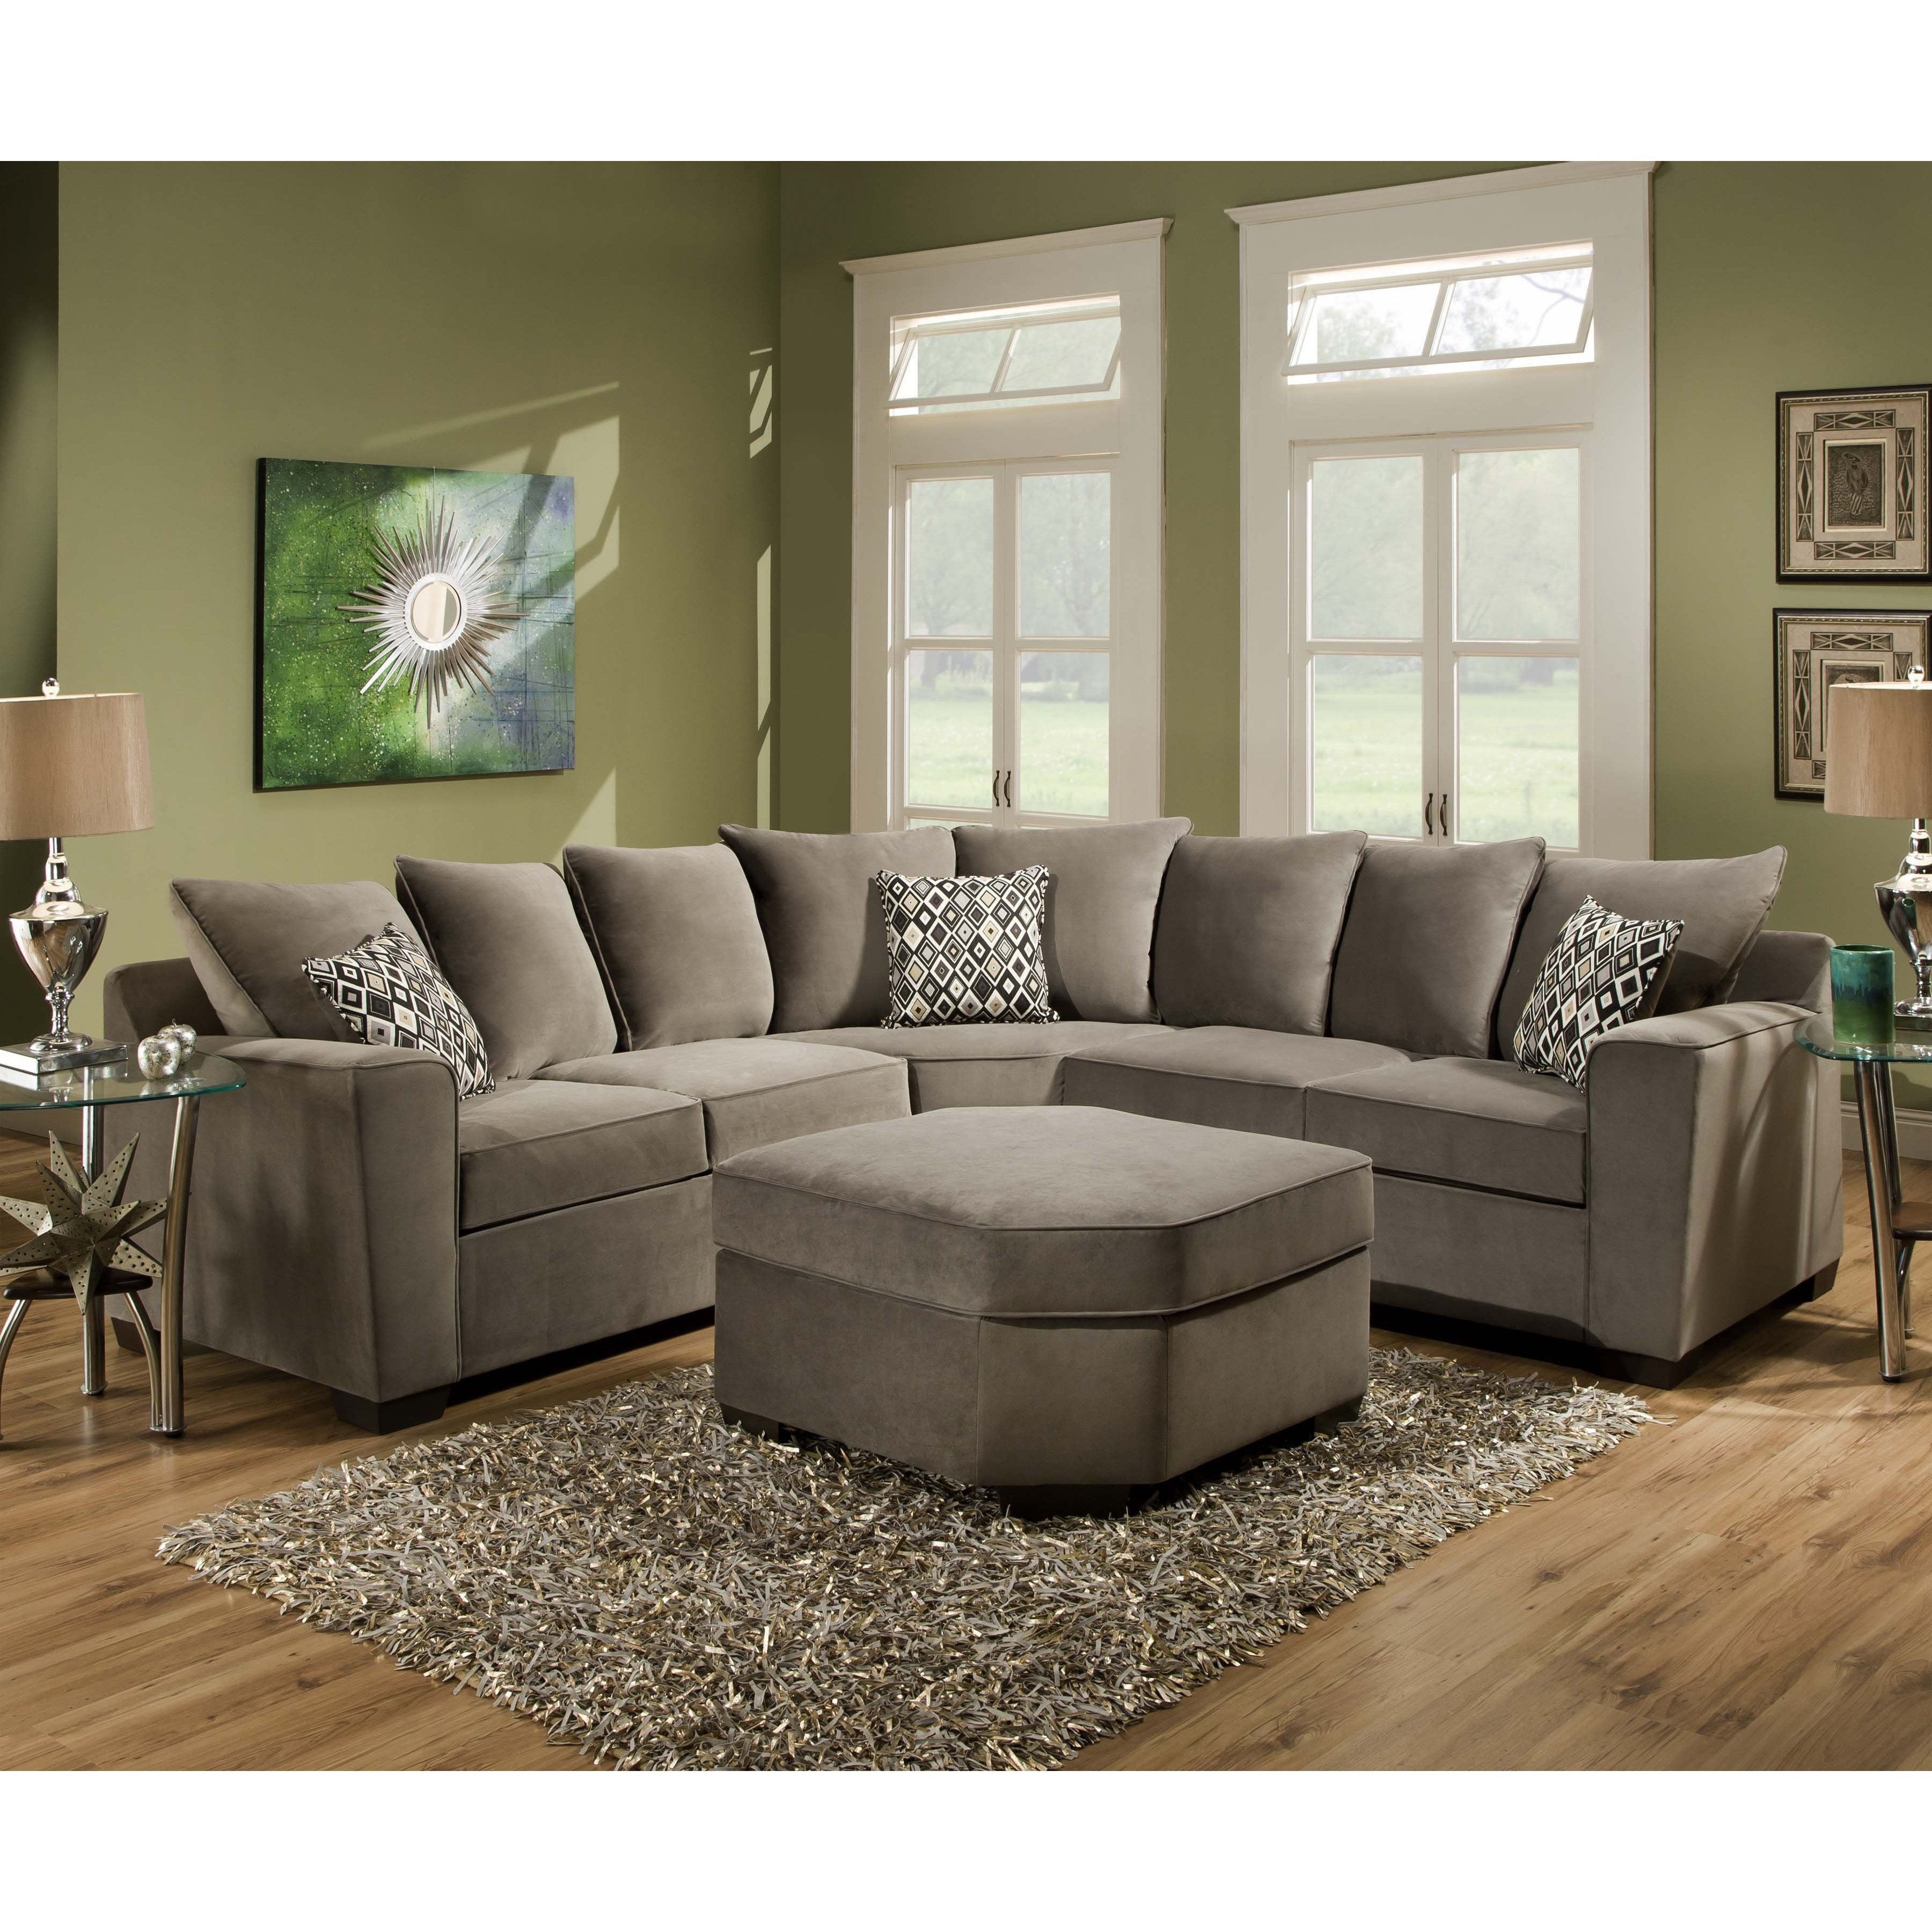 Inspiration about Fascinating 10 Foot Sectional Sofa 60 About Remodel Small Size Pertaining To 10 Foot  sc 1 st  Home Design Projects : 10 foot sectional sofa - Sectionals, Sofas & Couches